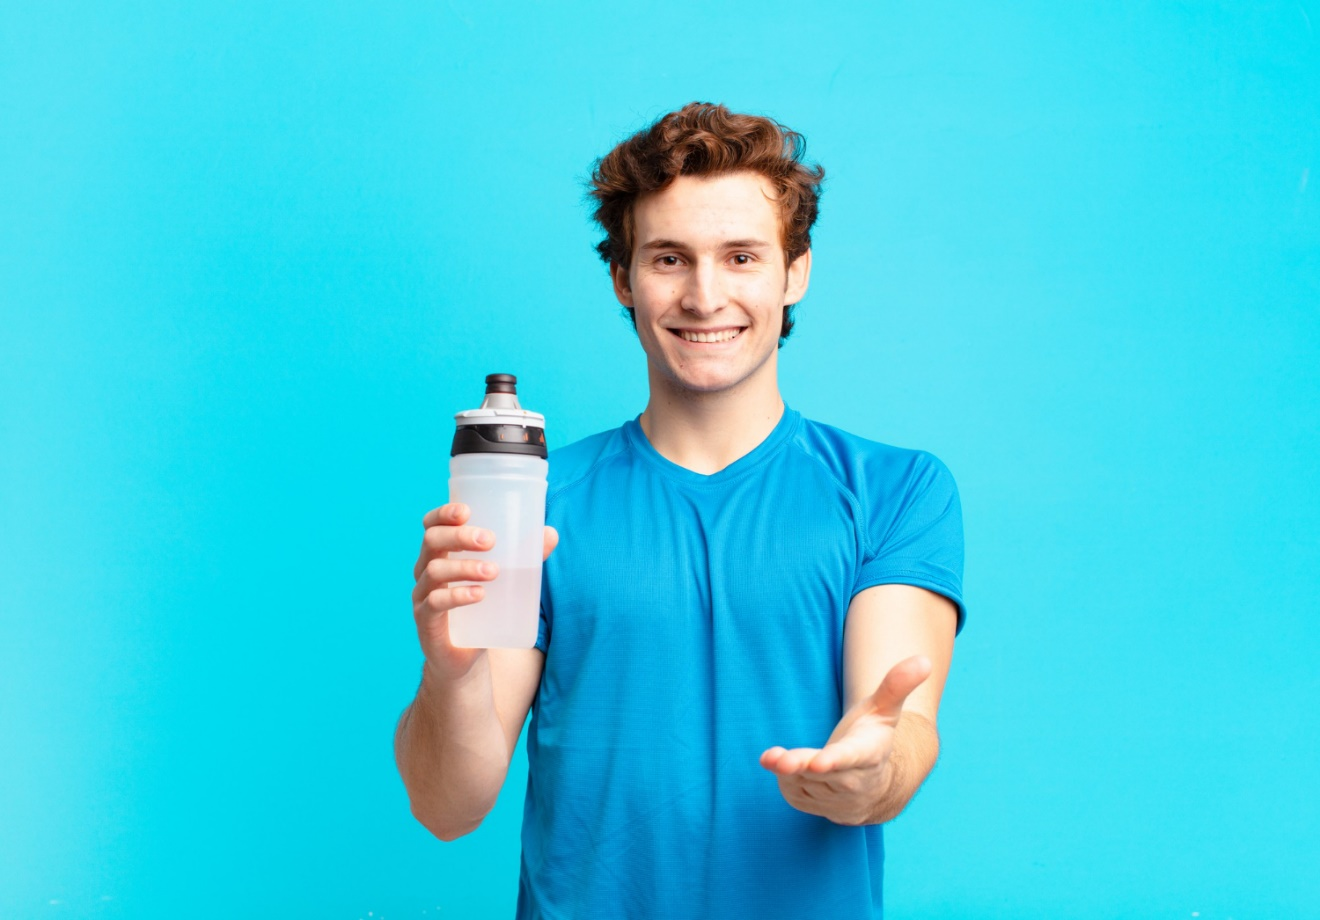 C:\Users\Dell\Downloads\sport-boy-smiling-happily-with-friendly-confident-positive-look-offering-showing-object-concept-energy-drink-concept.jpg